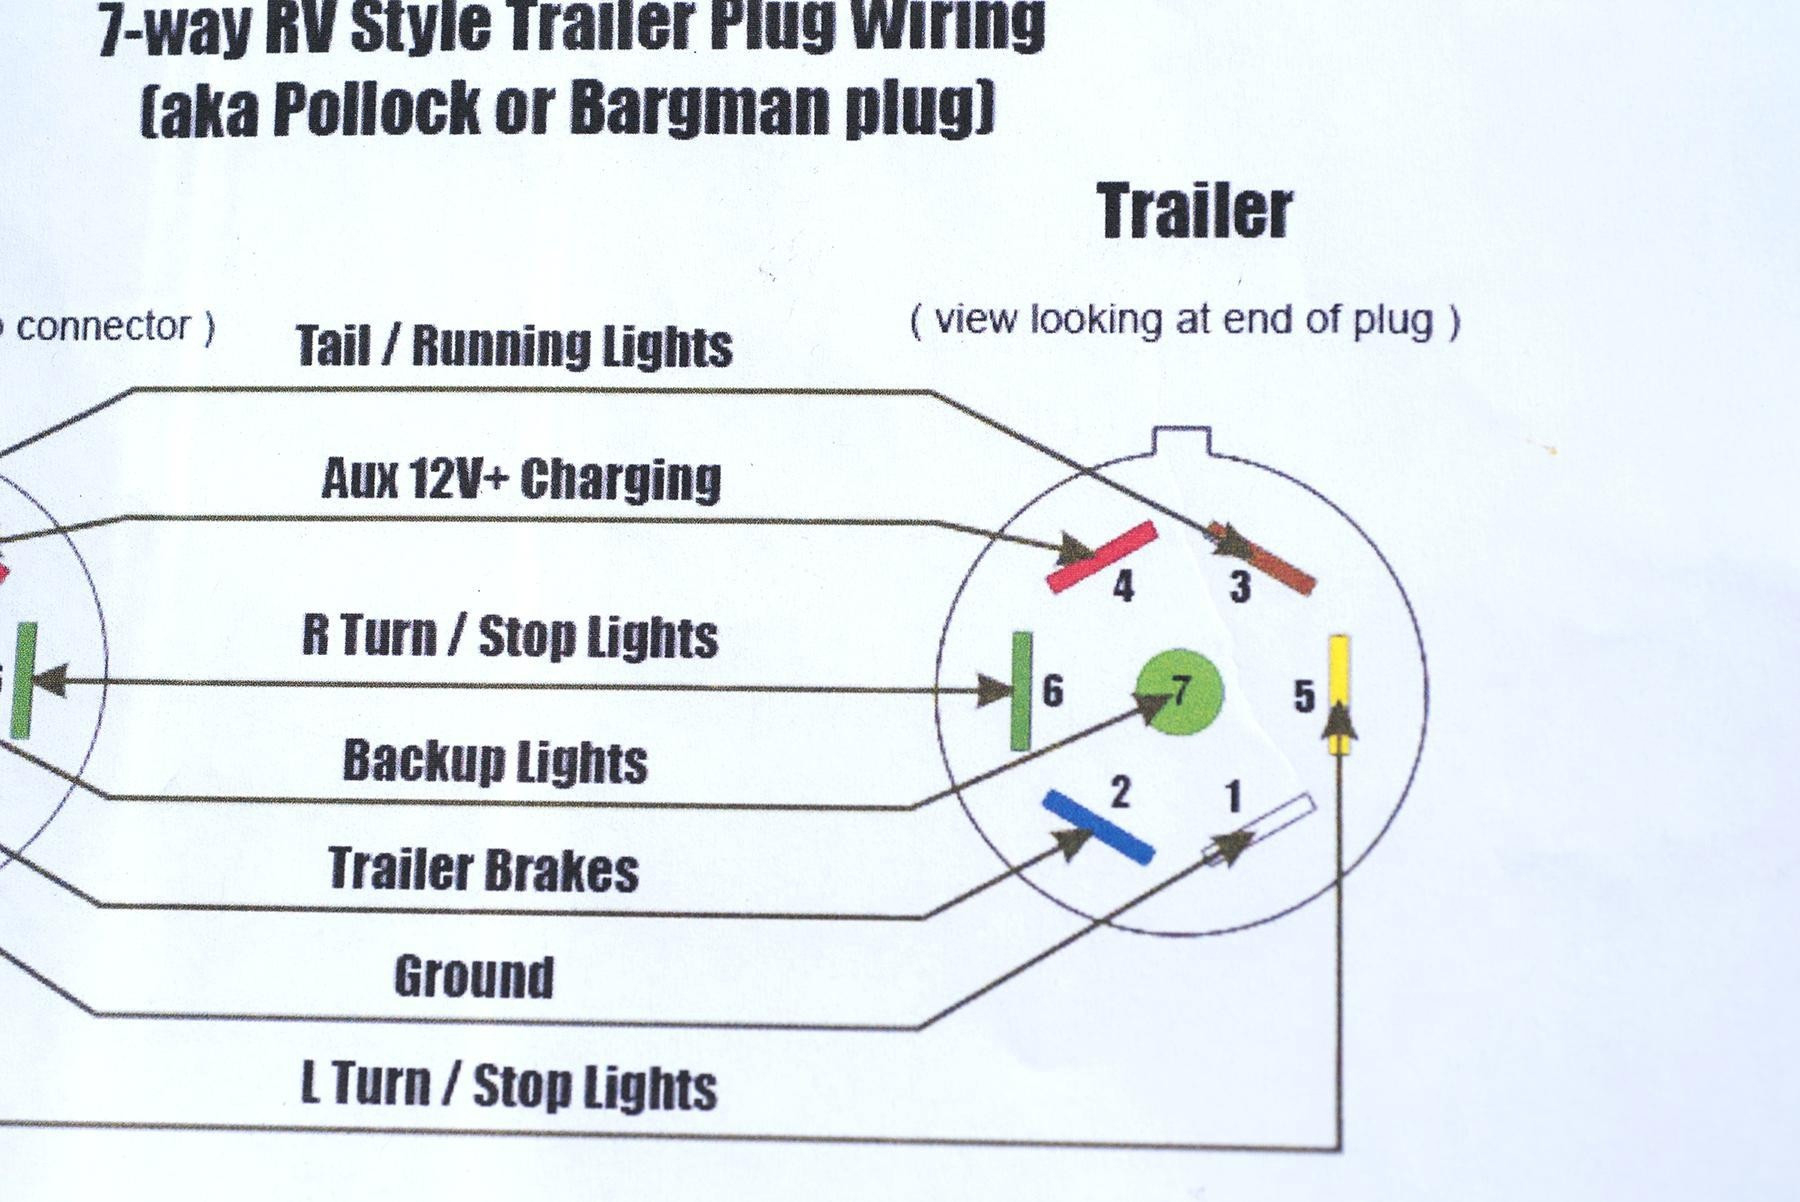 4 Pin Trailer Wiring Diagram Chevy - Wiring Diagram Explained - 4 Prong Trailer Wiring Diagram